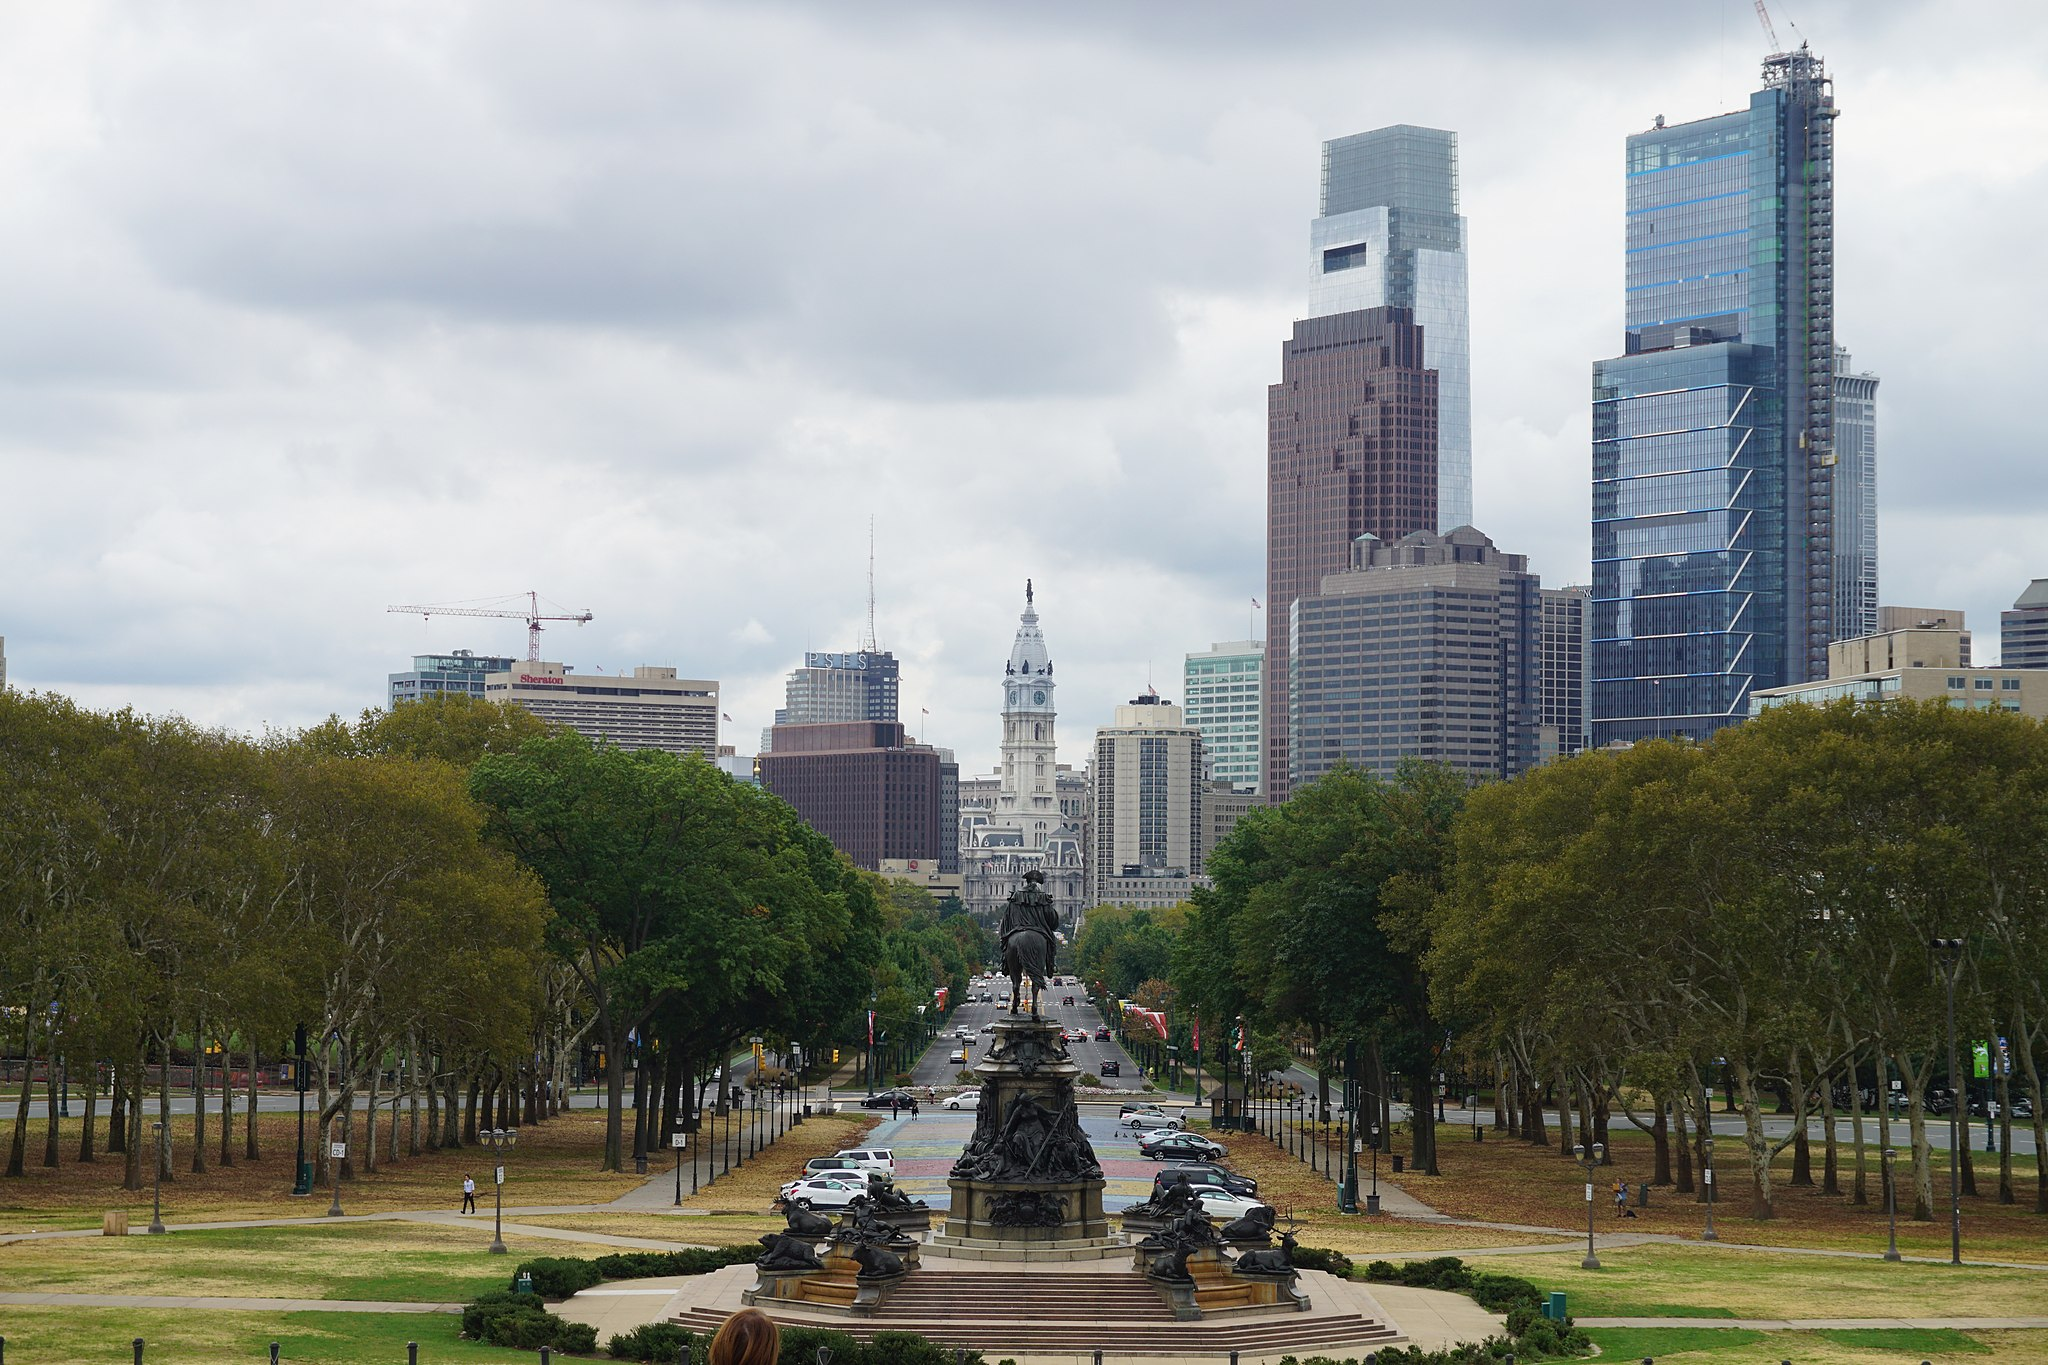 Philadelphia October 2017 20 (Benjamin Franklin Parkway from Philadelphia Museum of Art)